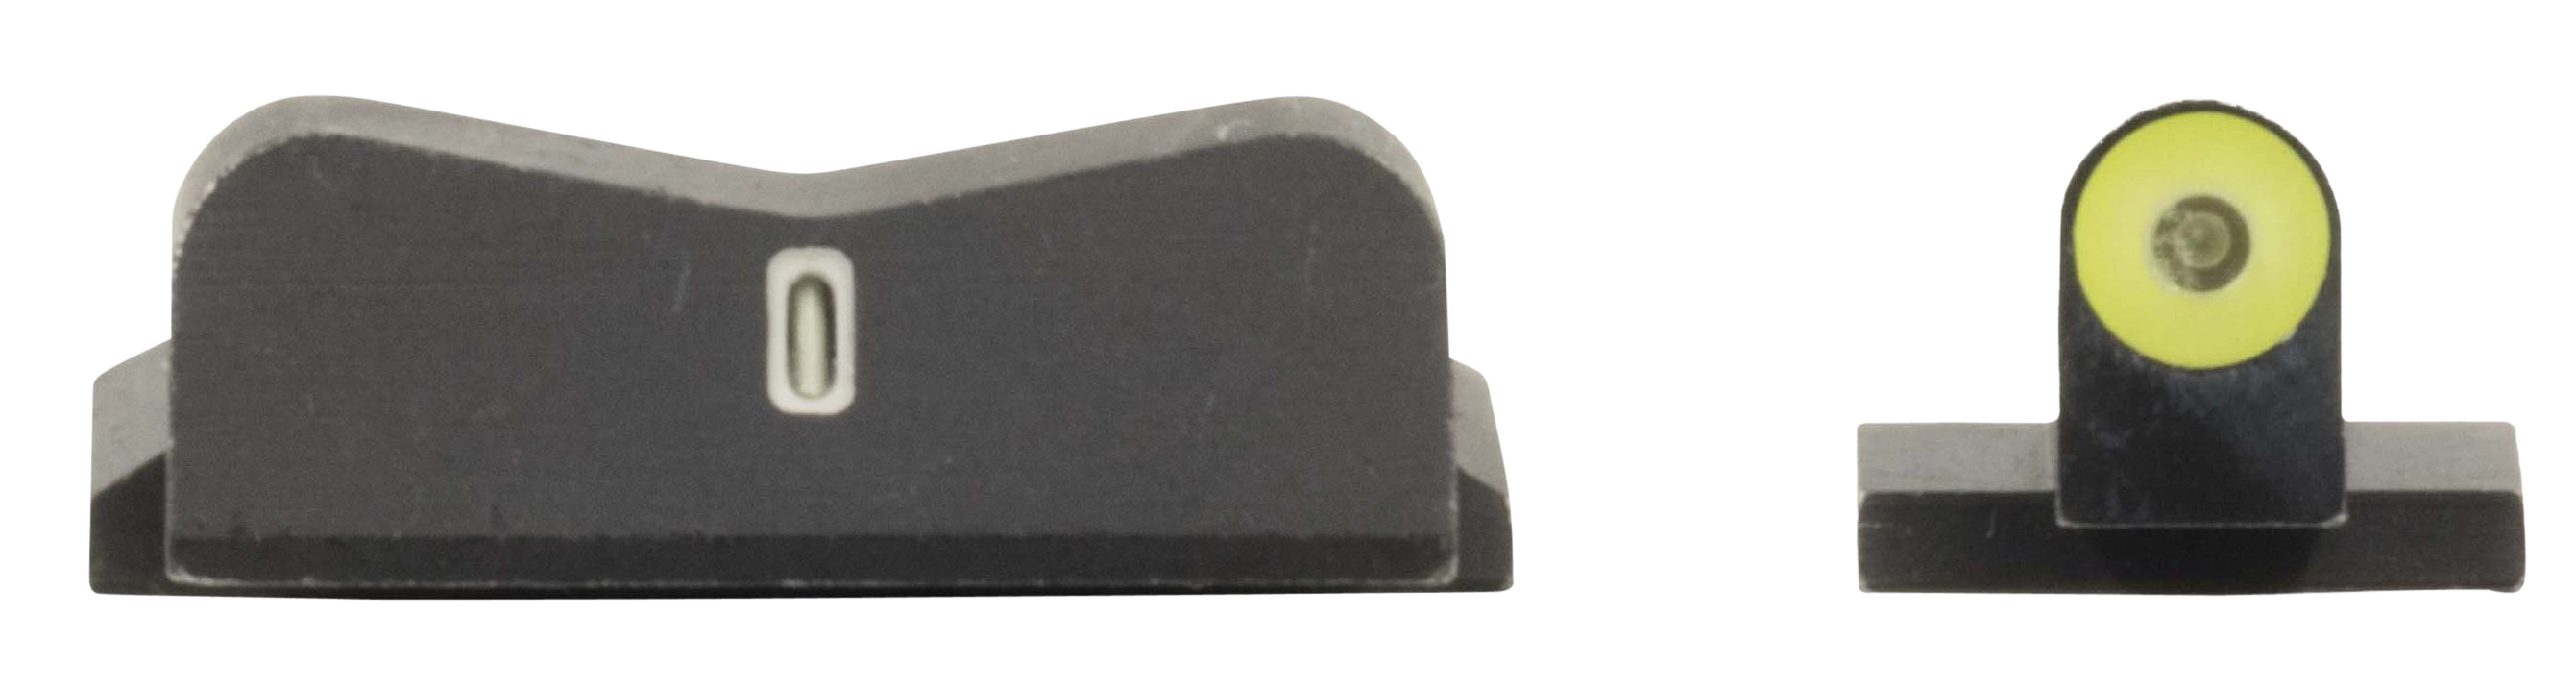 XS Sights DXT II Sights - S&W M&P 9/40/45 Full Size, Compact, M2.0